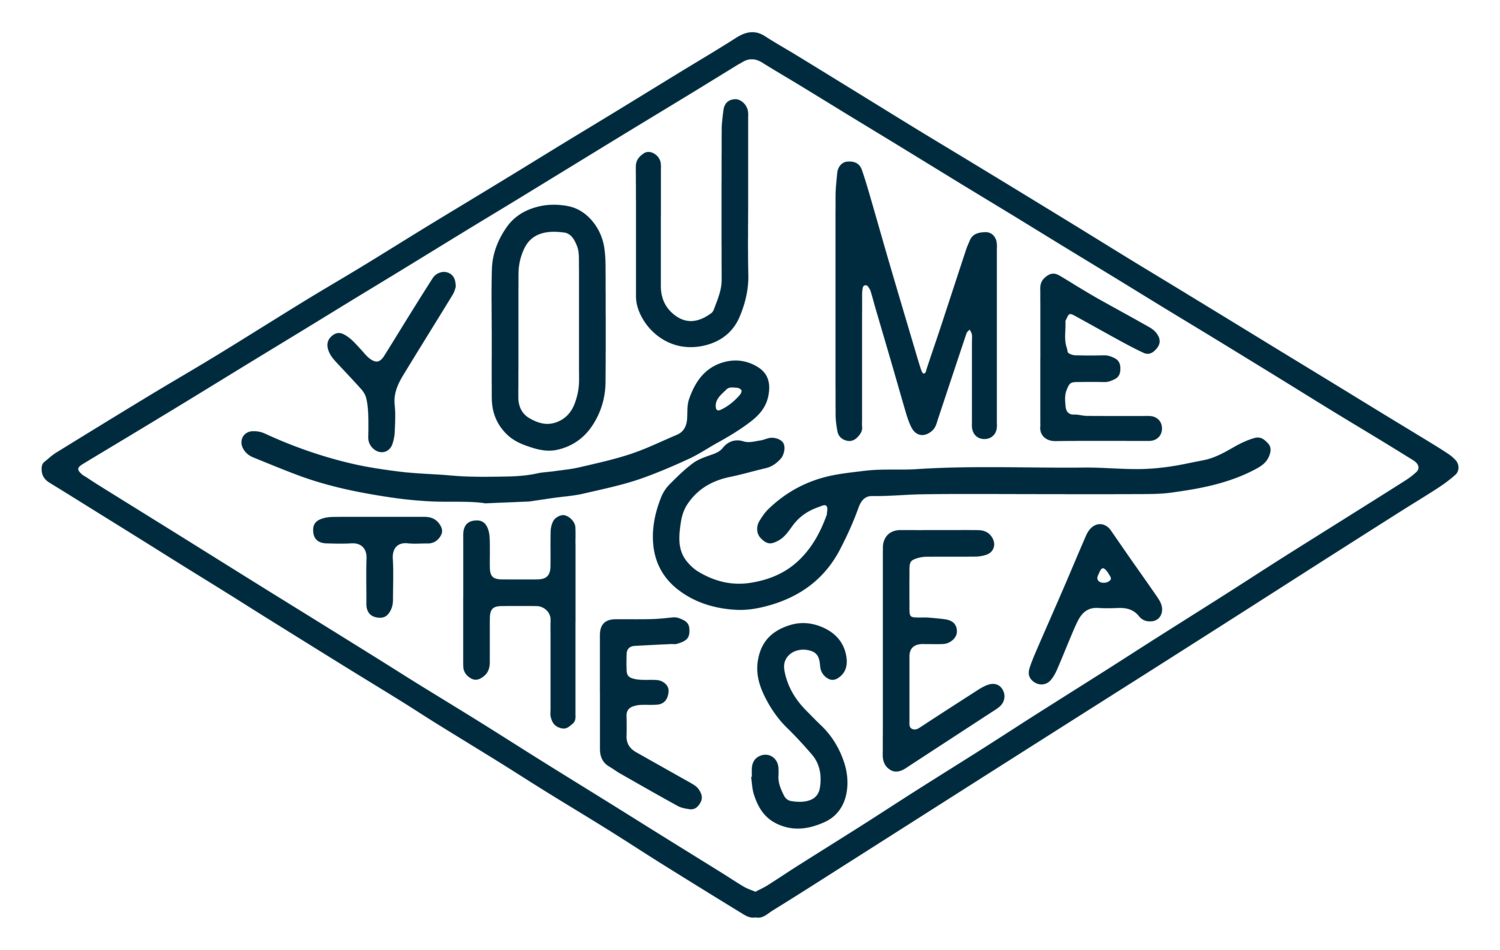 You Me & The Sea